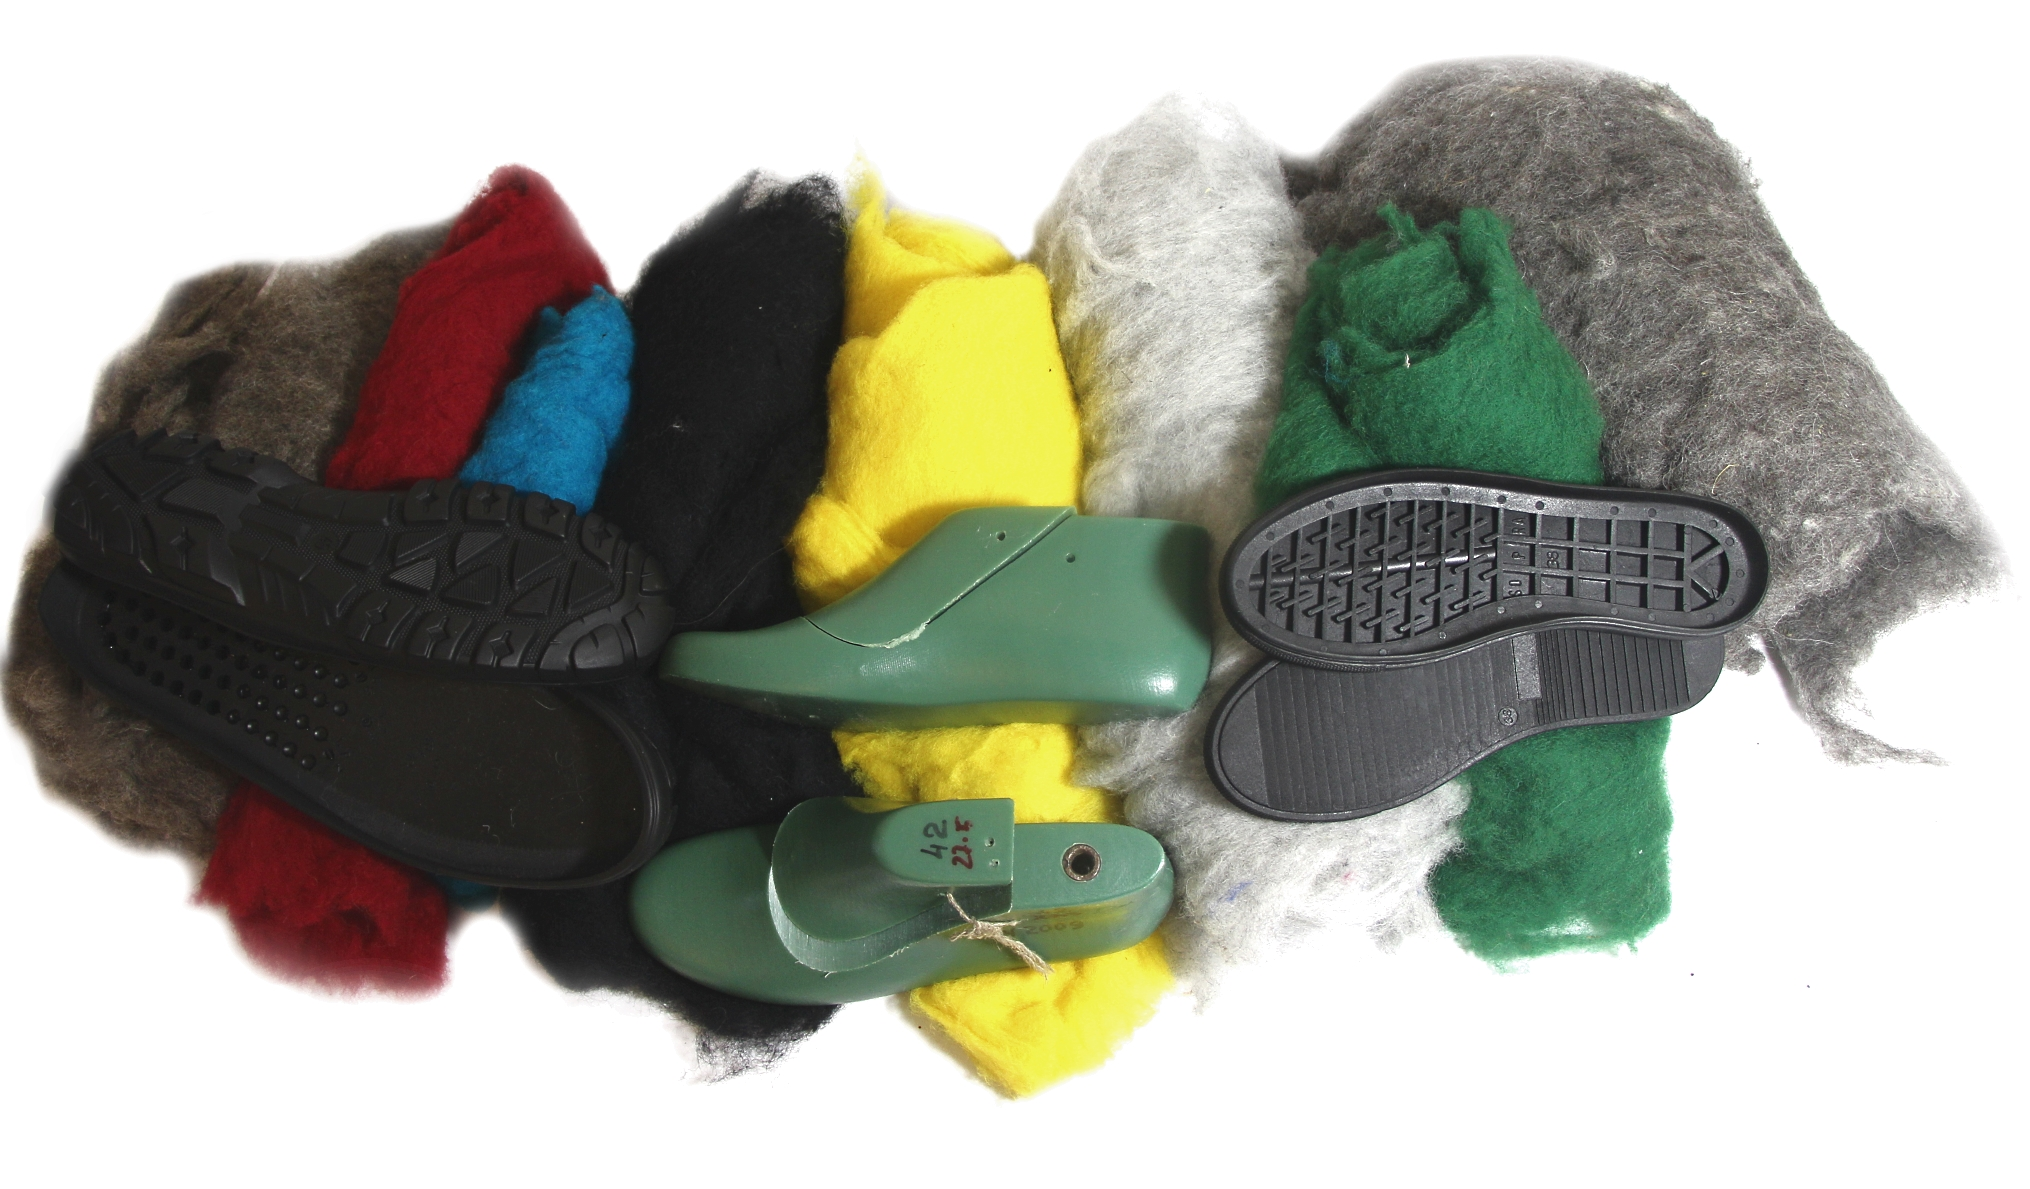 The organic wool for felting wool boots and felt shoes at FELT FORMA